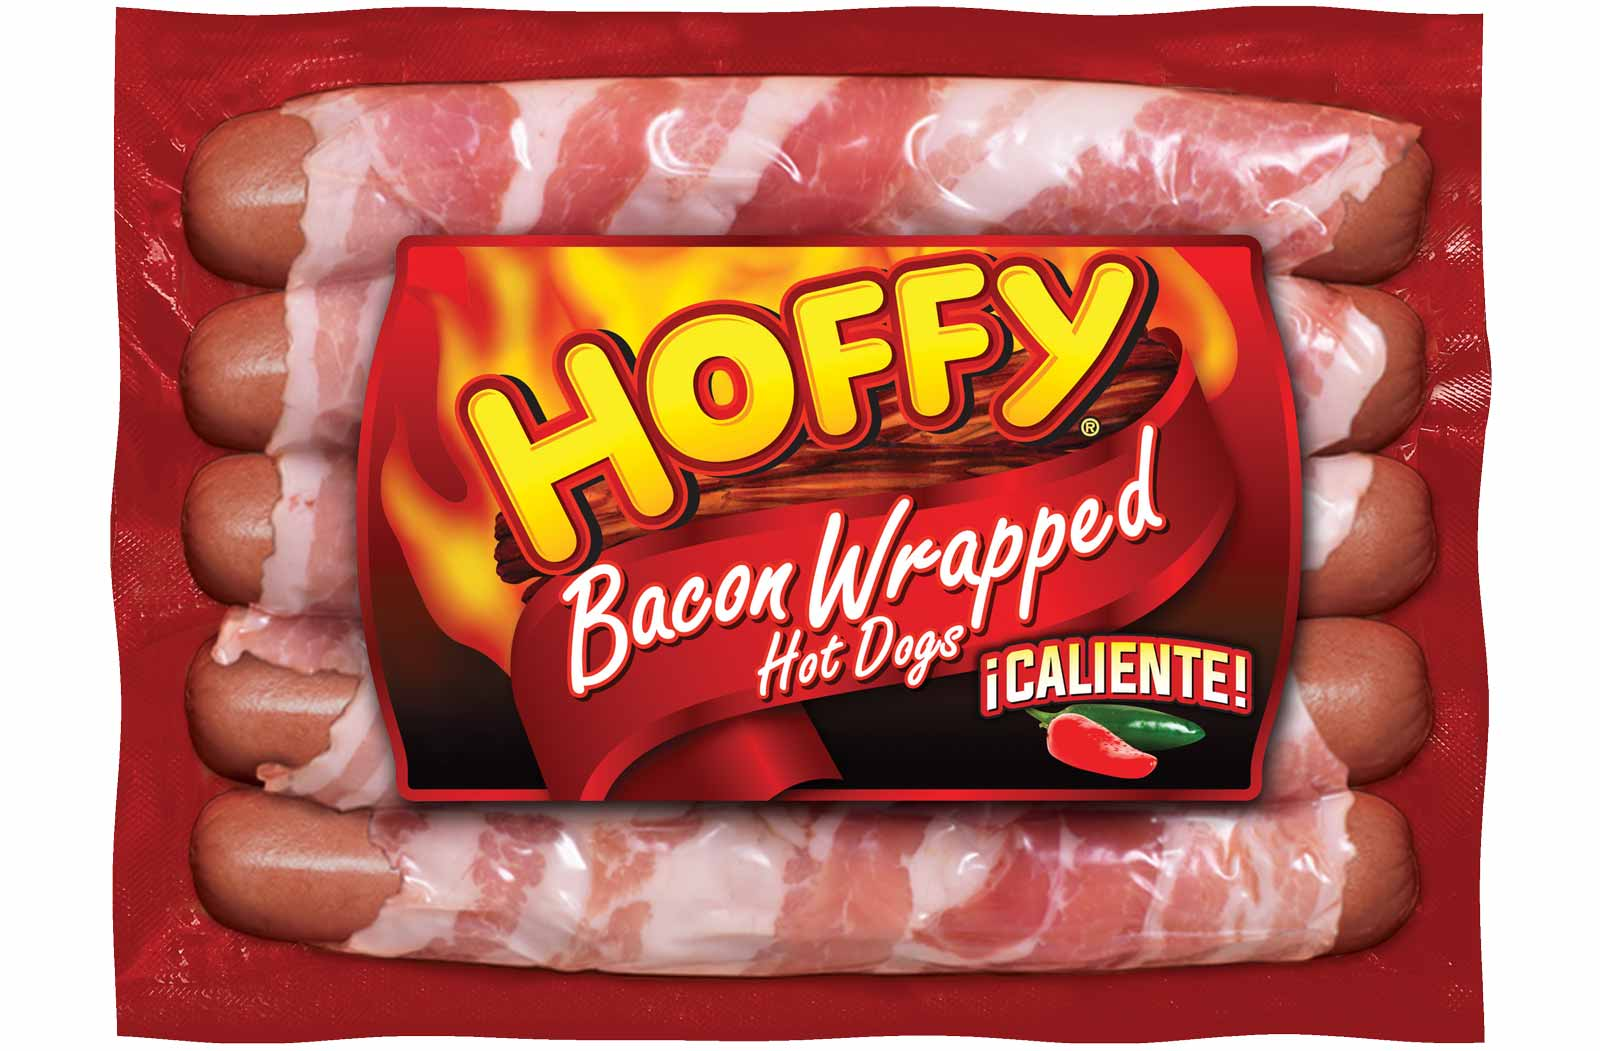 Bacon Wrapped Hot Dogs – ¡Caliente!